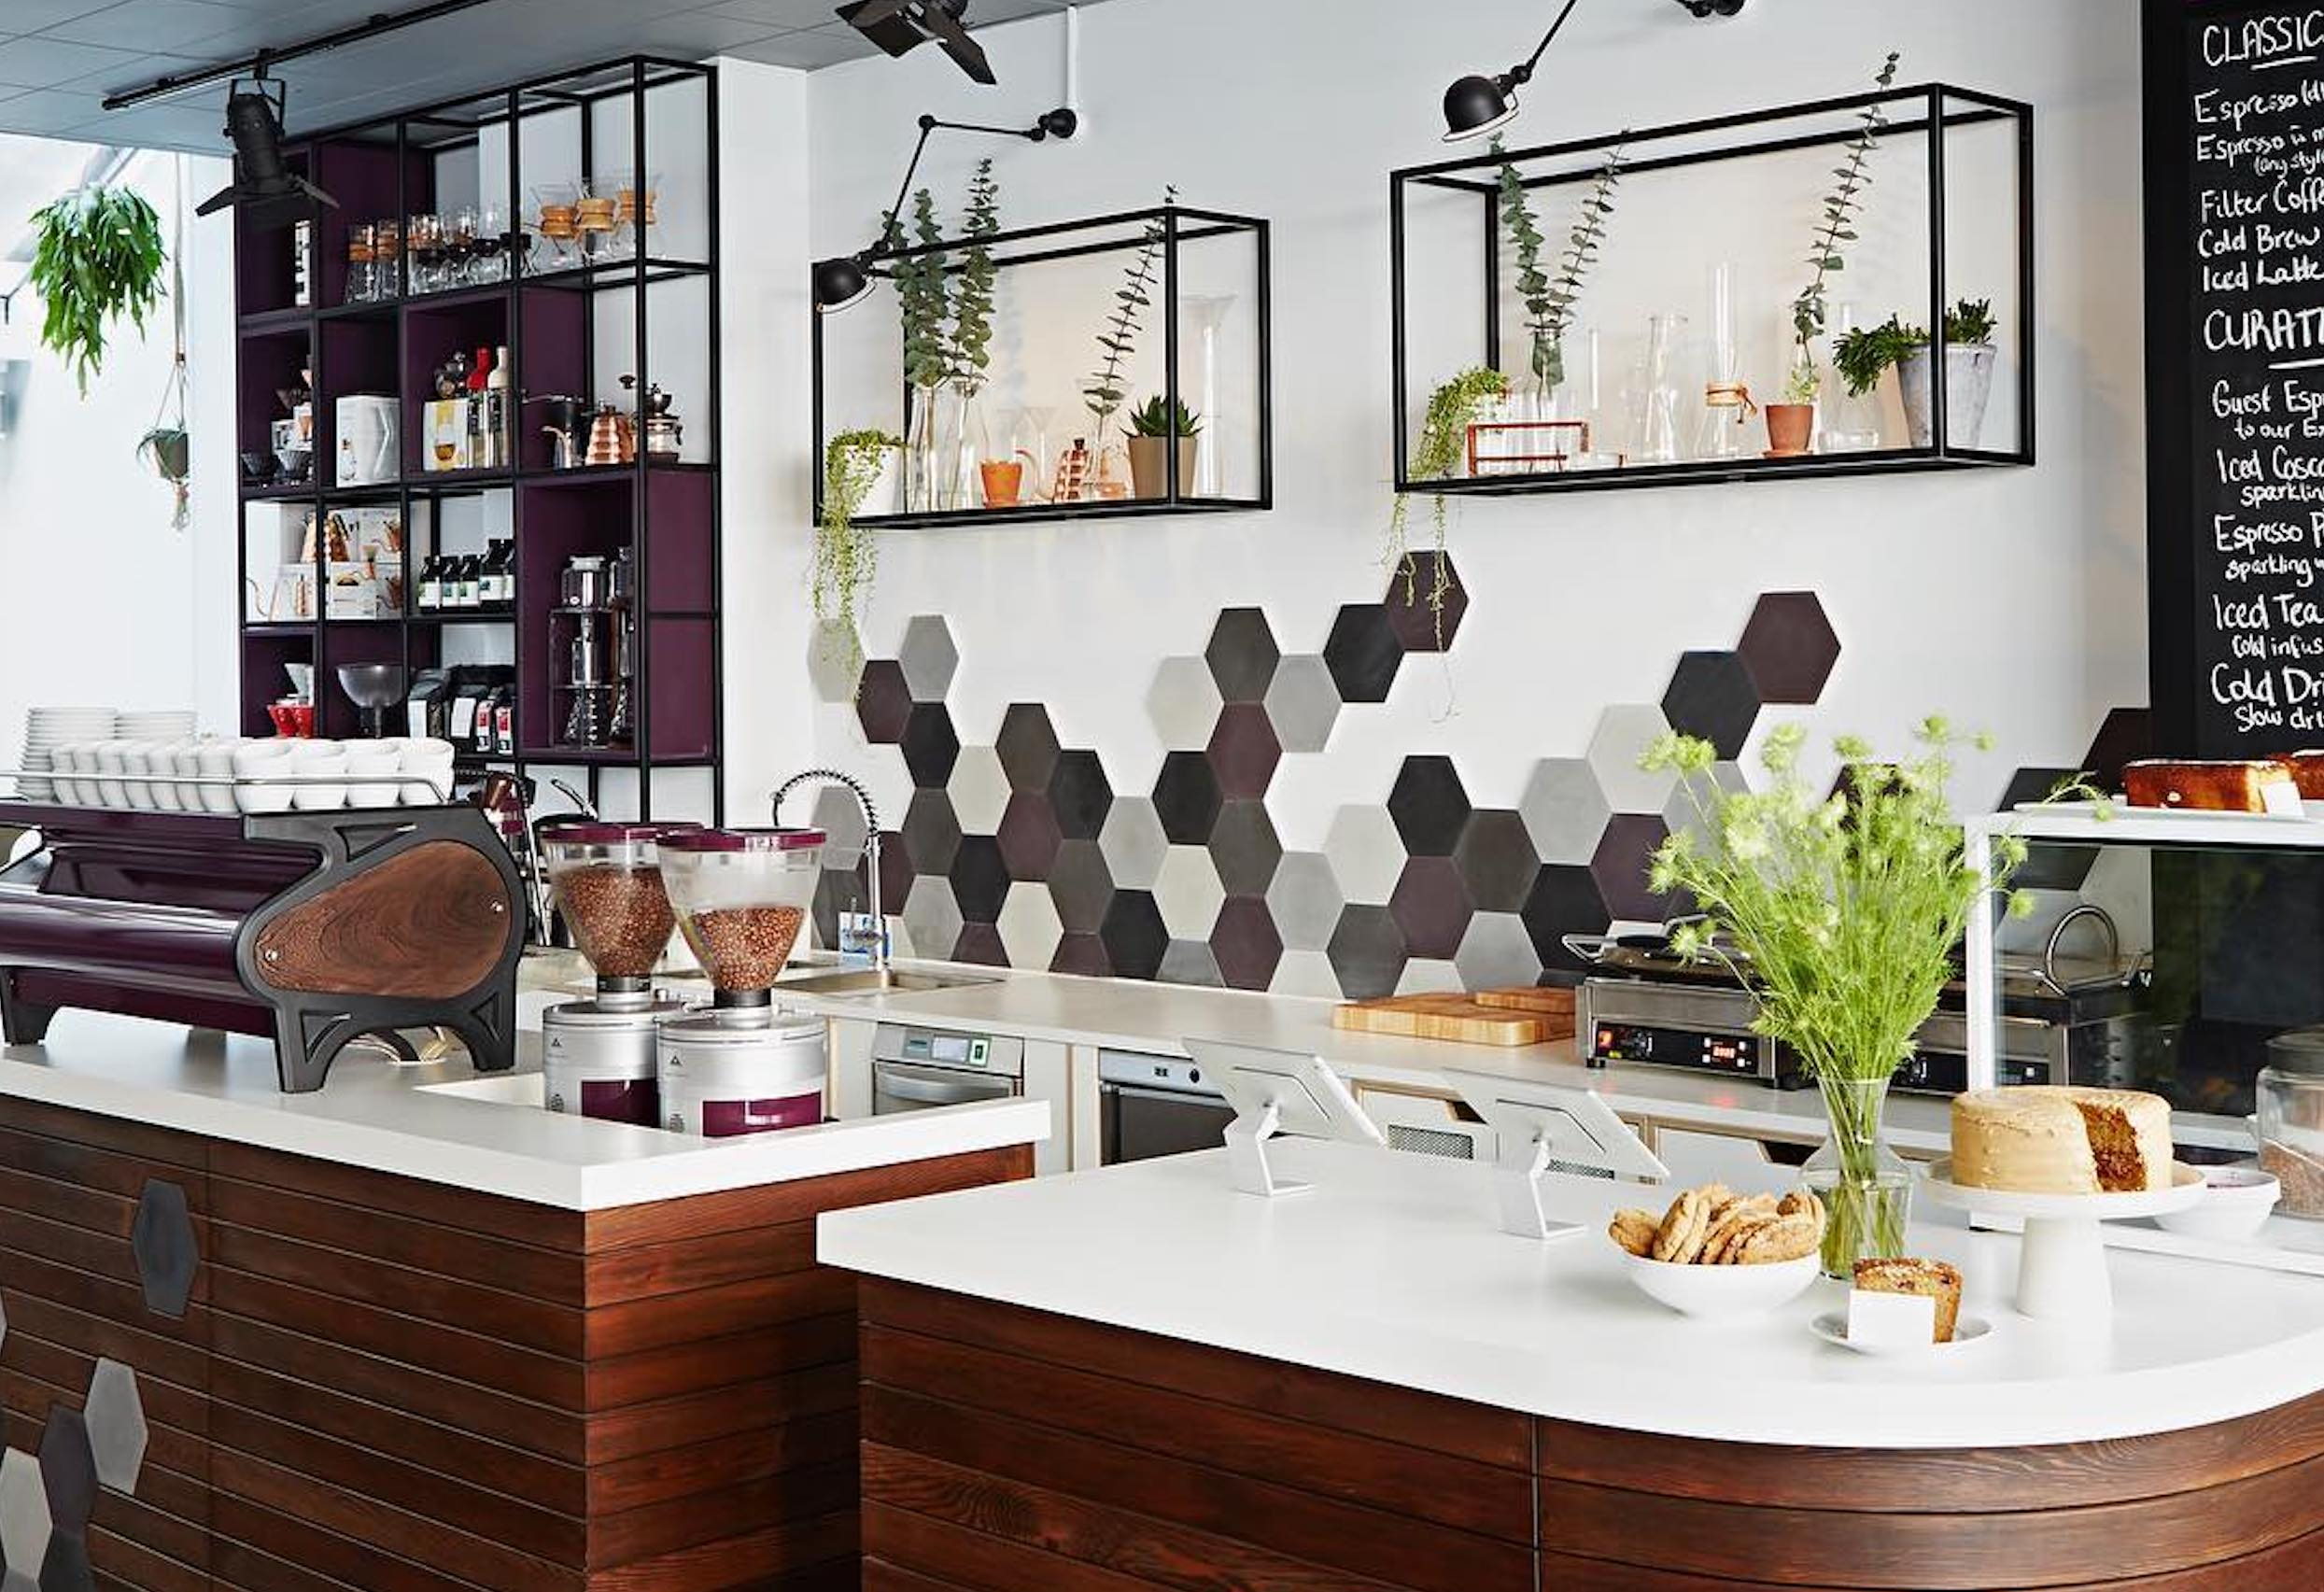 London speciality coffee shop Curators Coffee Gallery closes in Fitzrovia